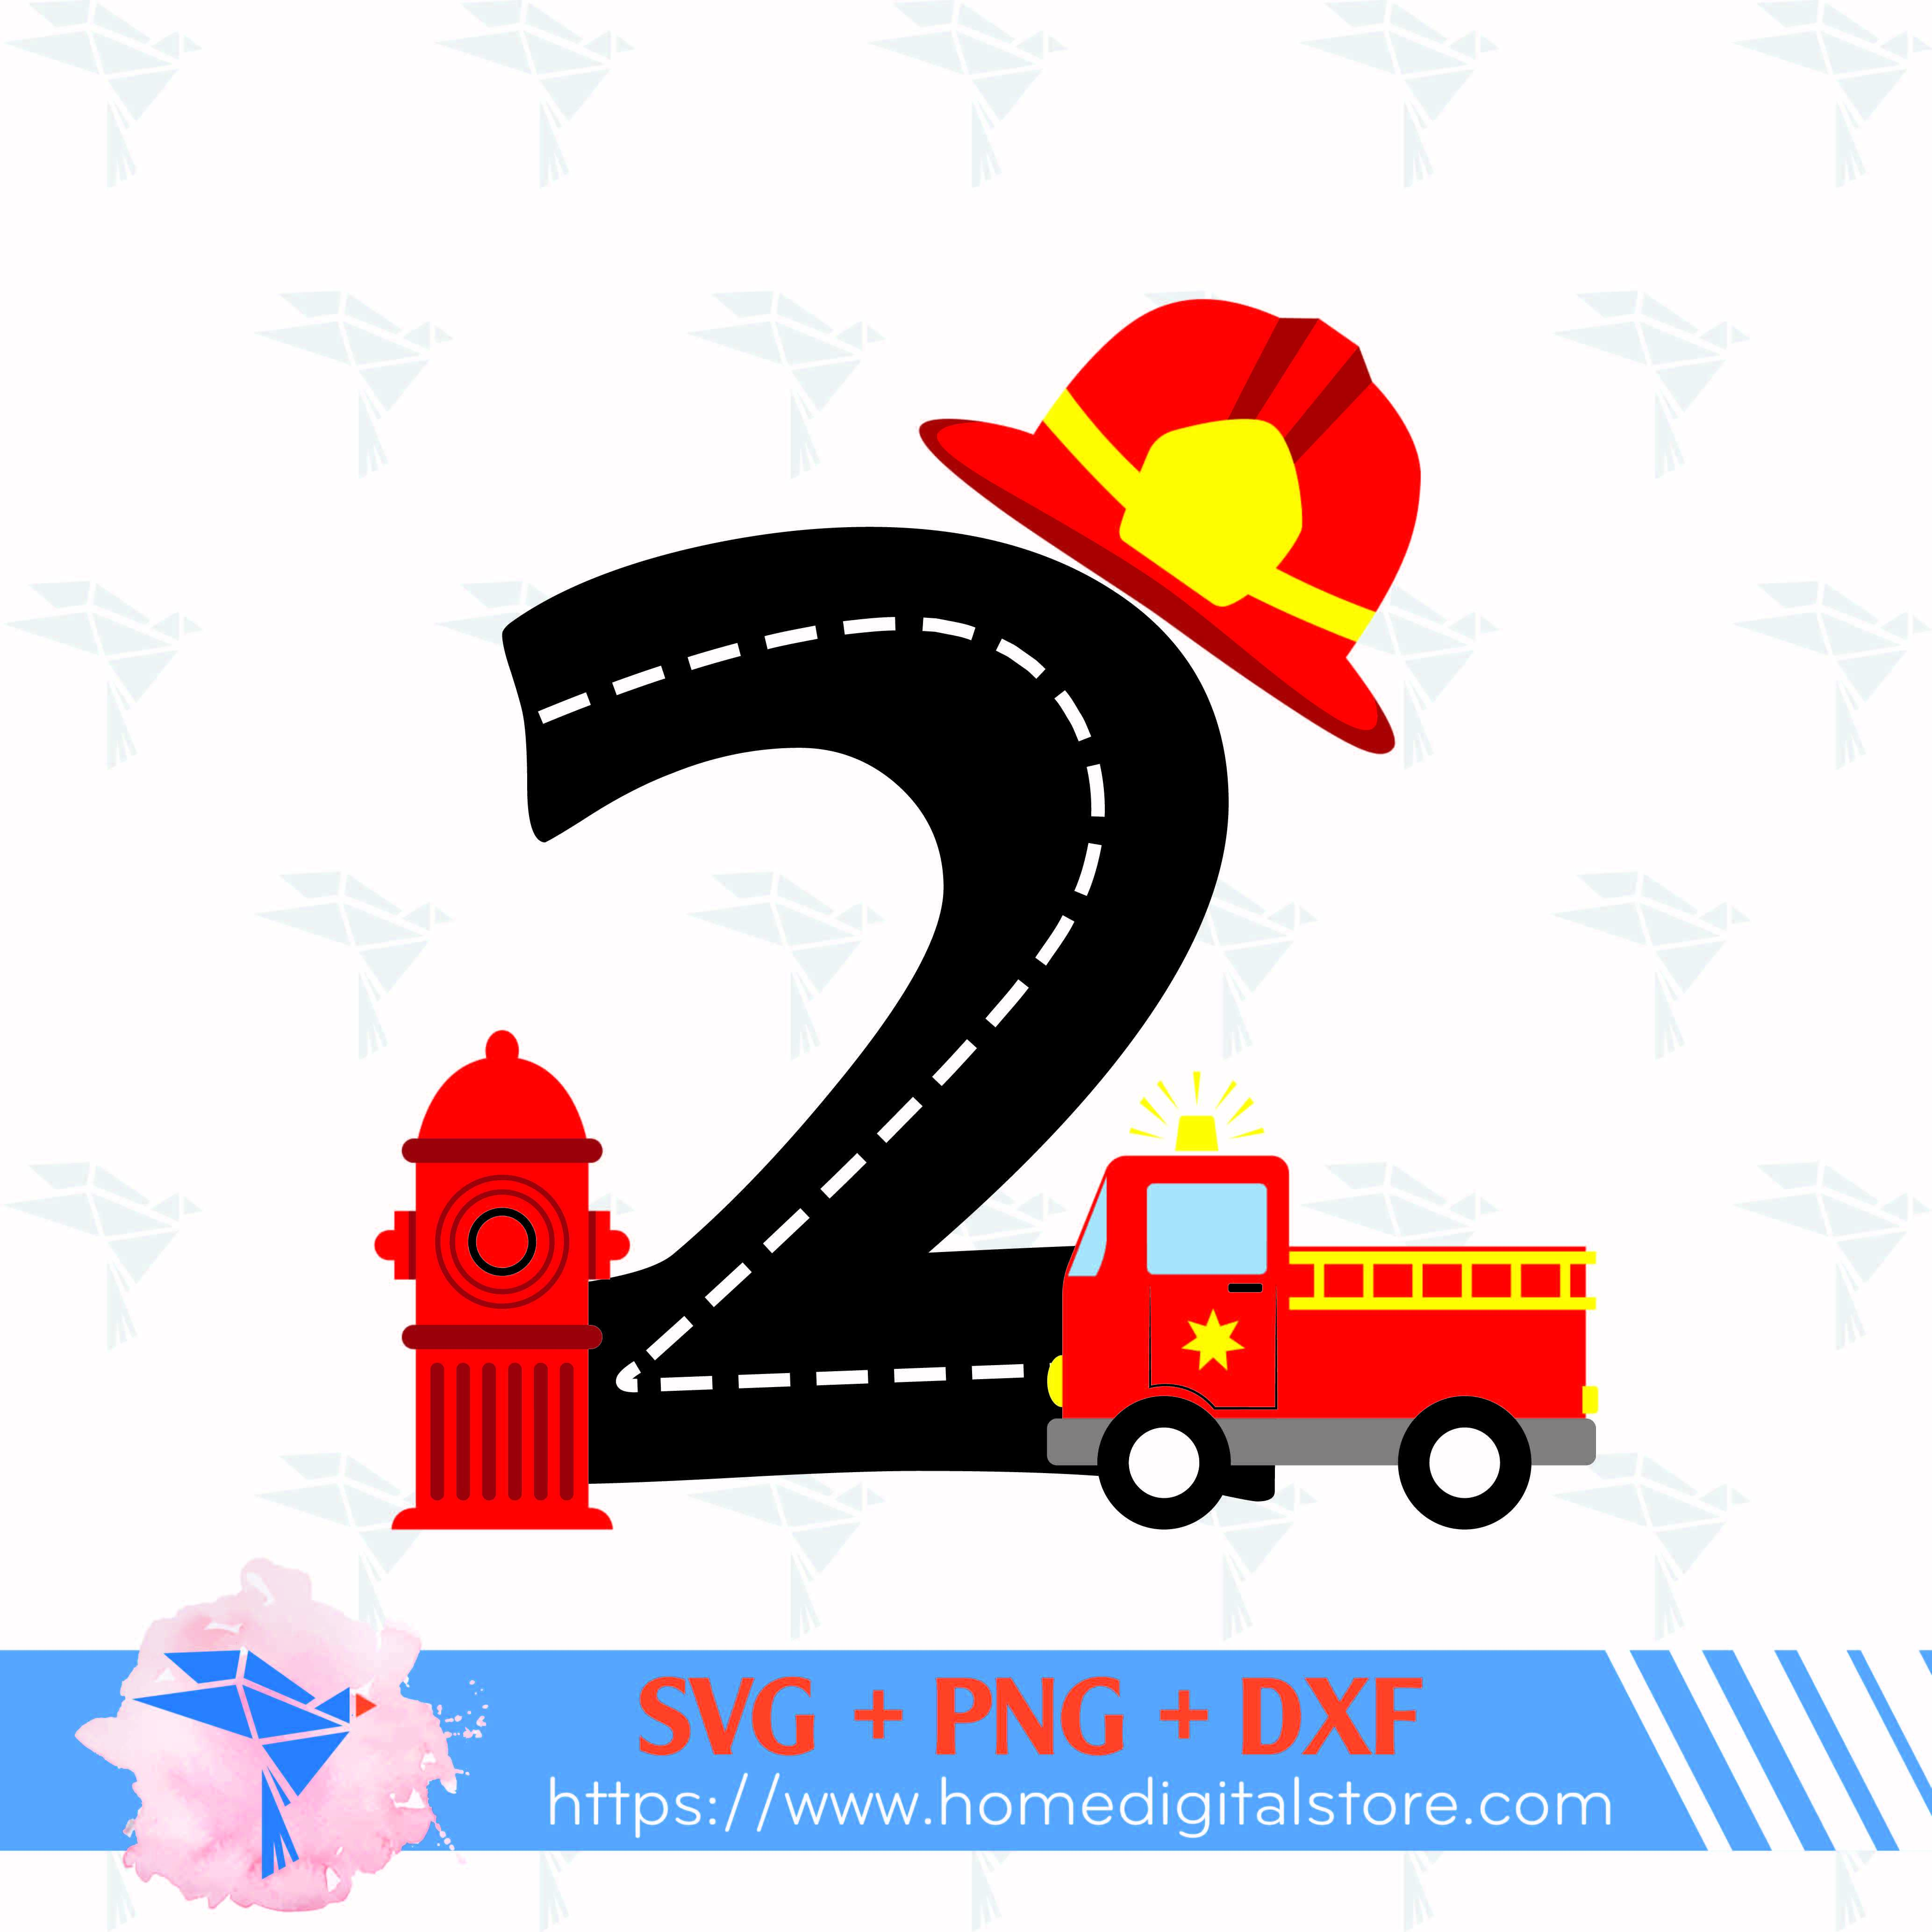 Fire Truck 2nd Birthday Svg Png Dxf By Homedigitalstore On Zibbet